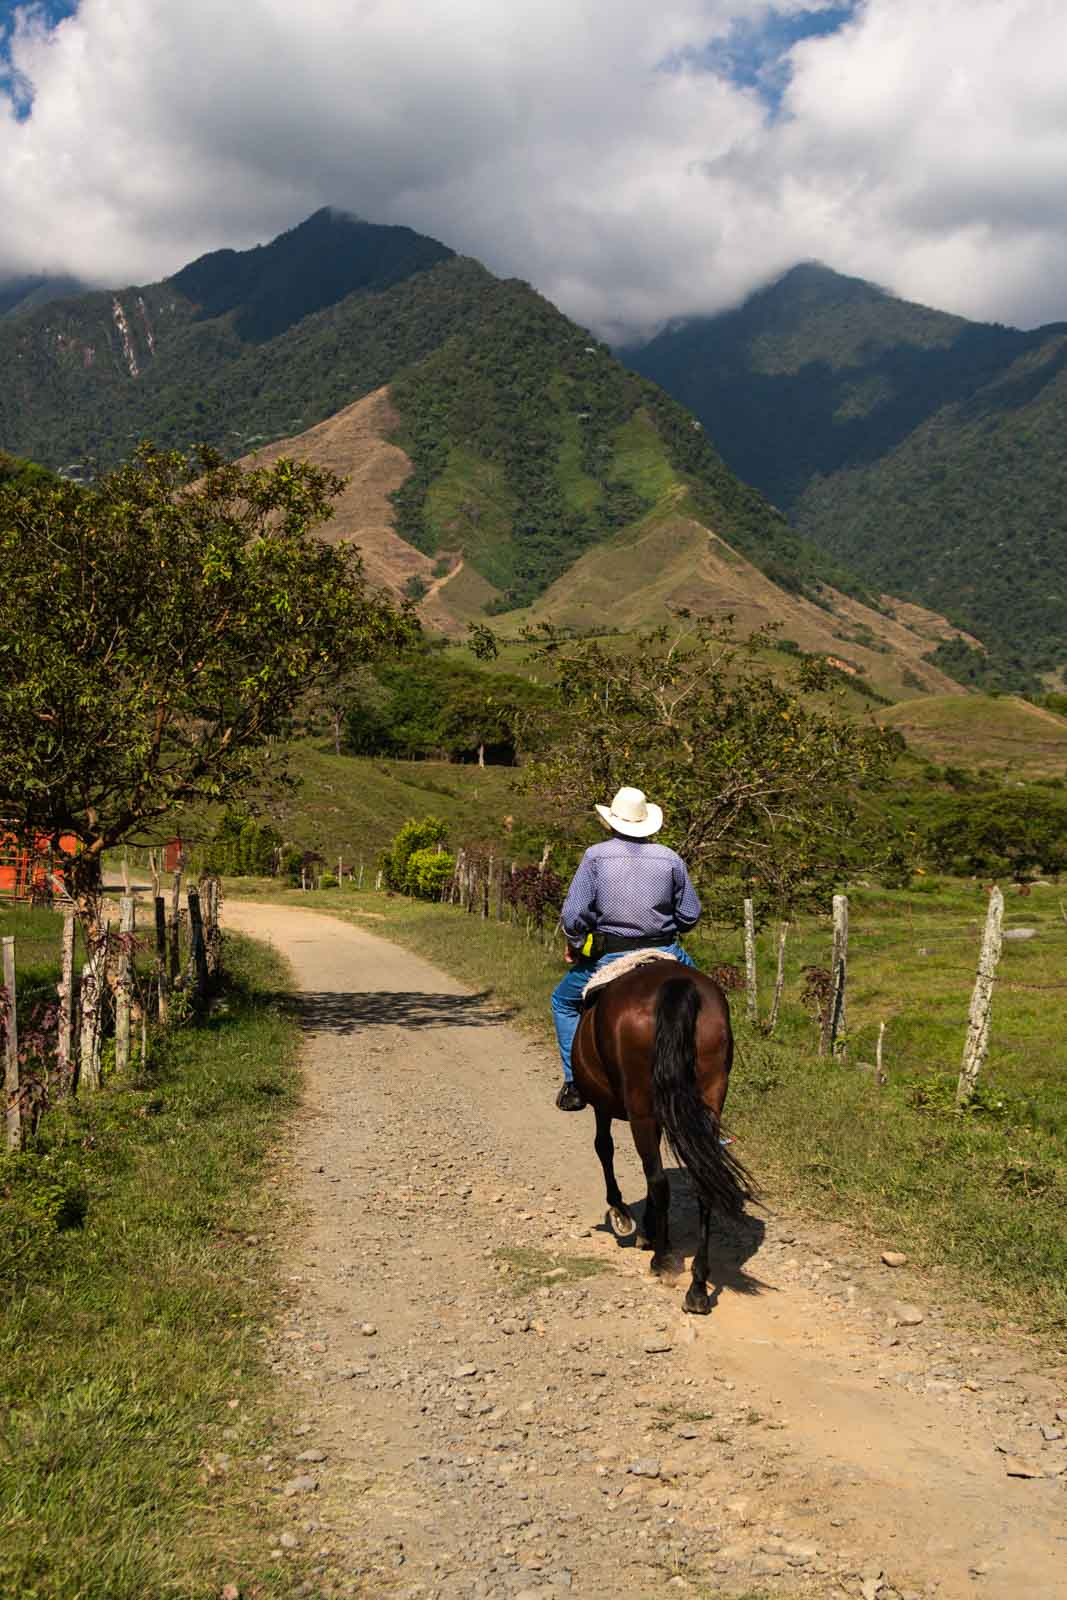 A cowboy riding a horse in Jardin, Colombia.